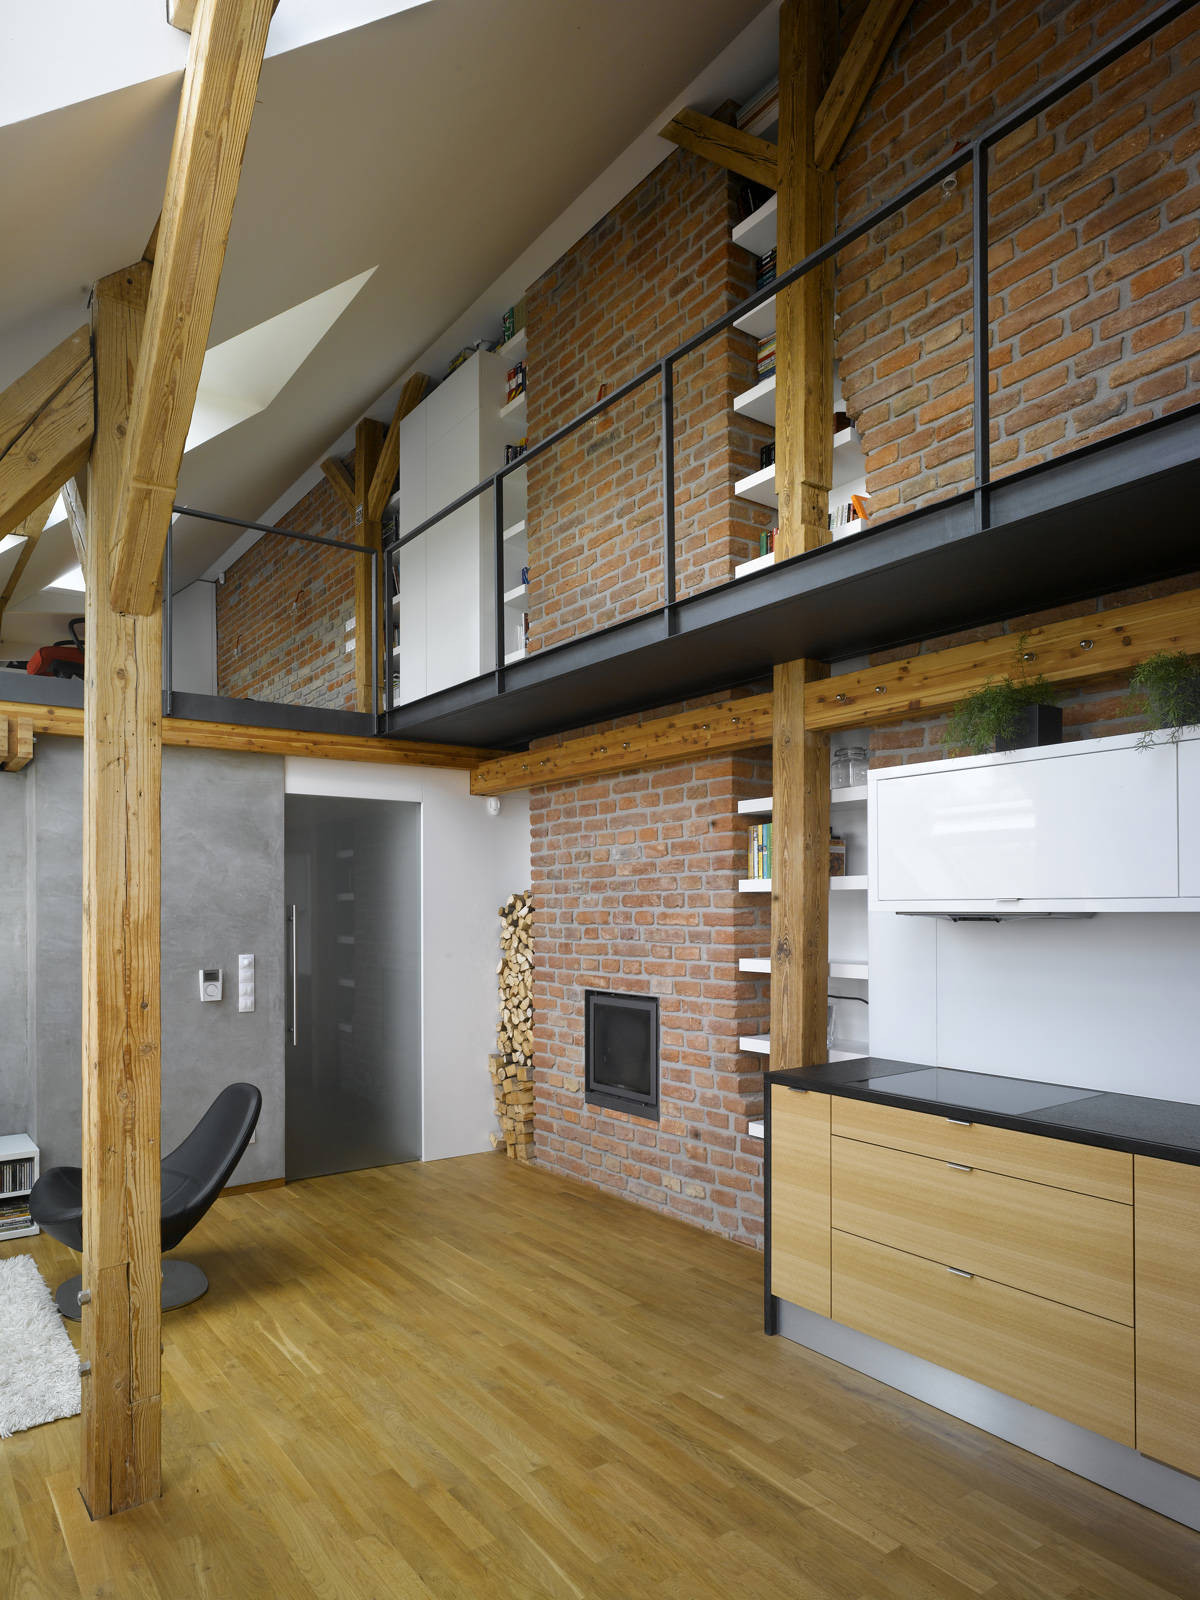 Studio Apartment Vs Loft mini-loft apartment in prague / dalibor hlavacek | archdaily